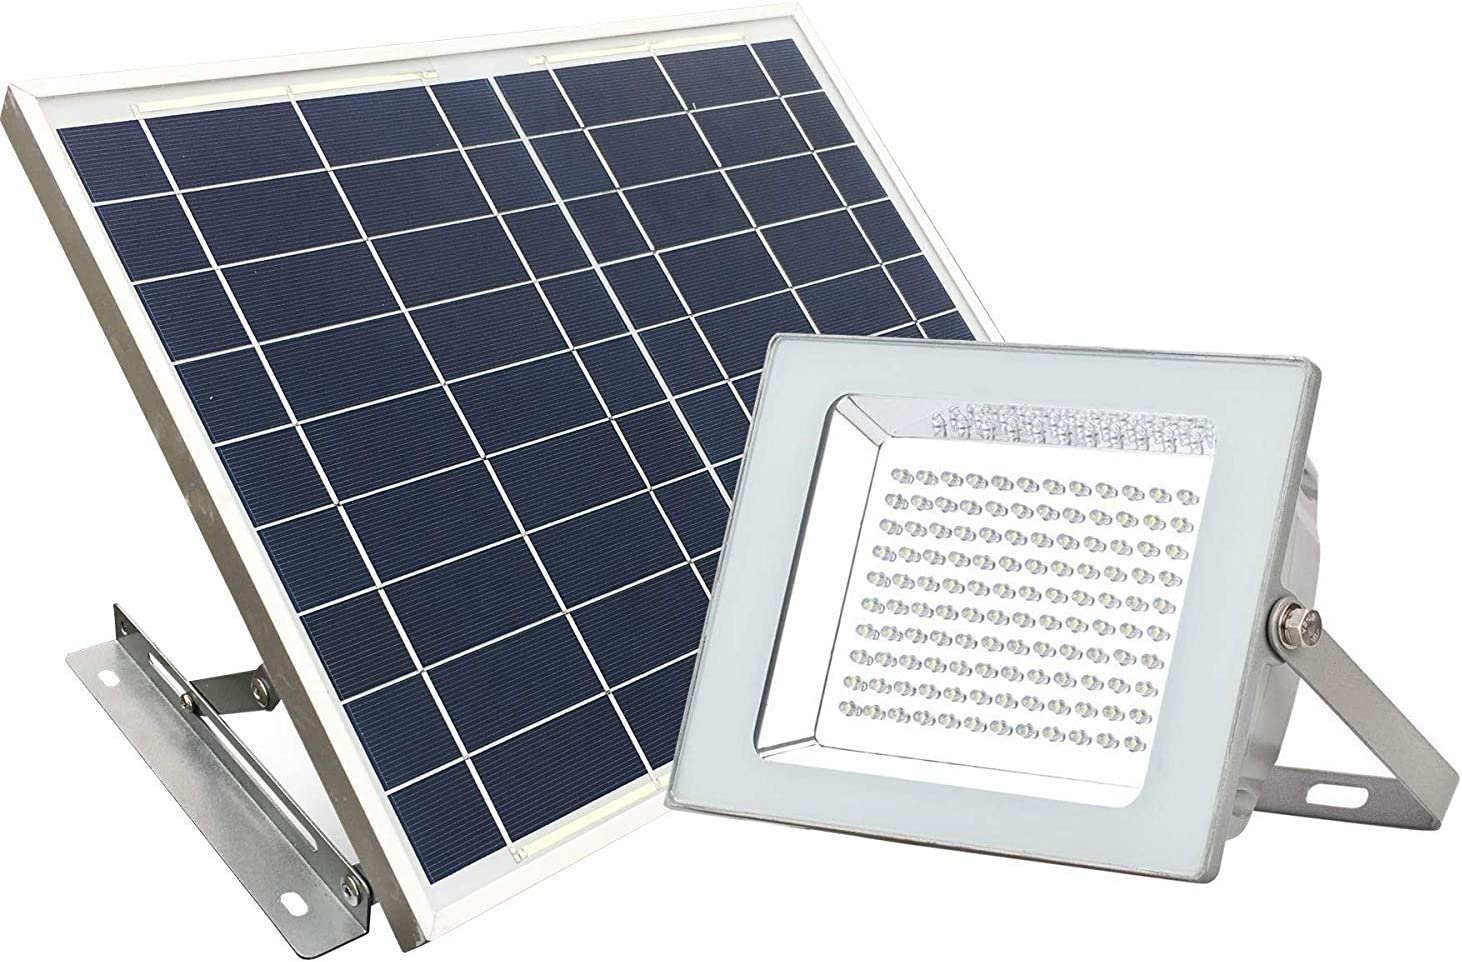 Solar Light Outdoor Today's Max 45% OFF only Flood Lights Dusk with to Daw